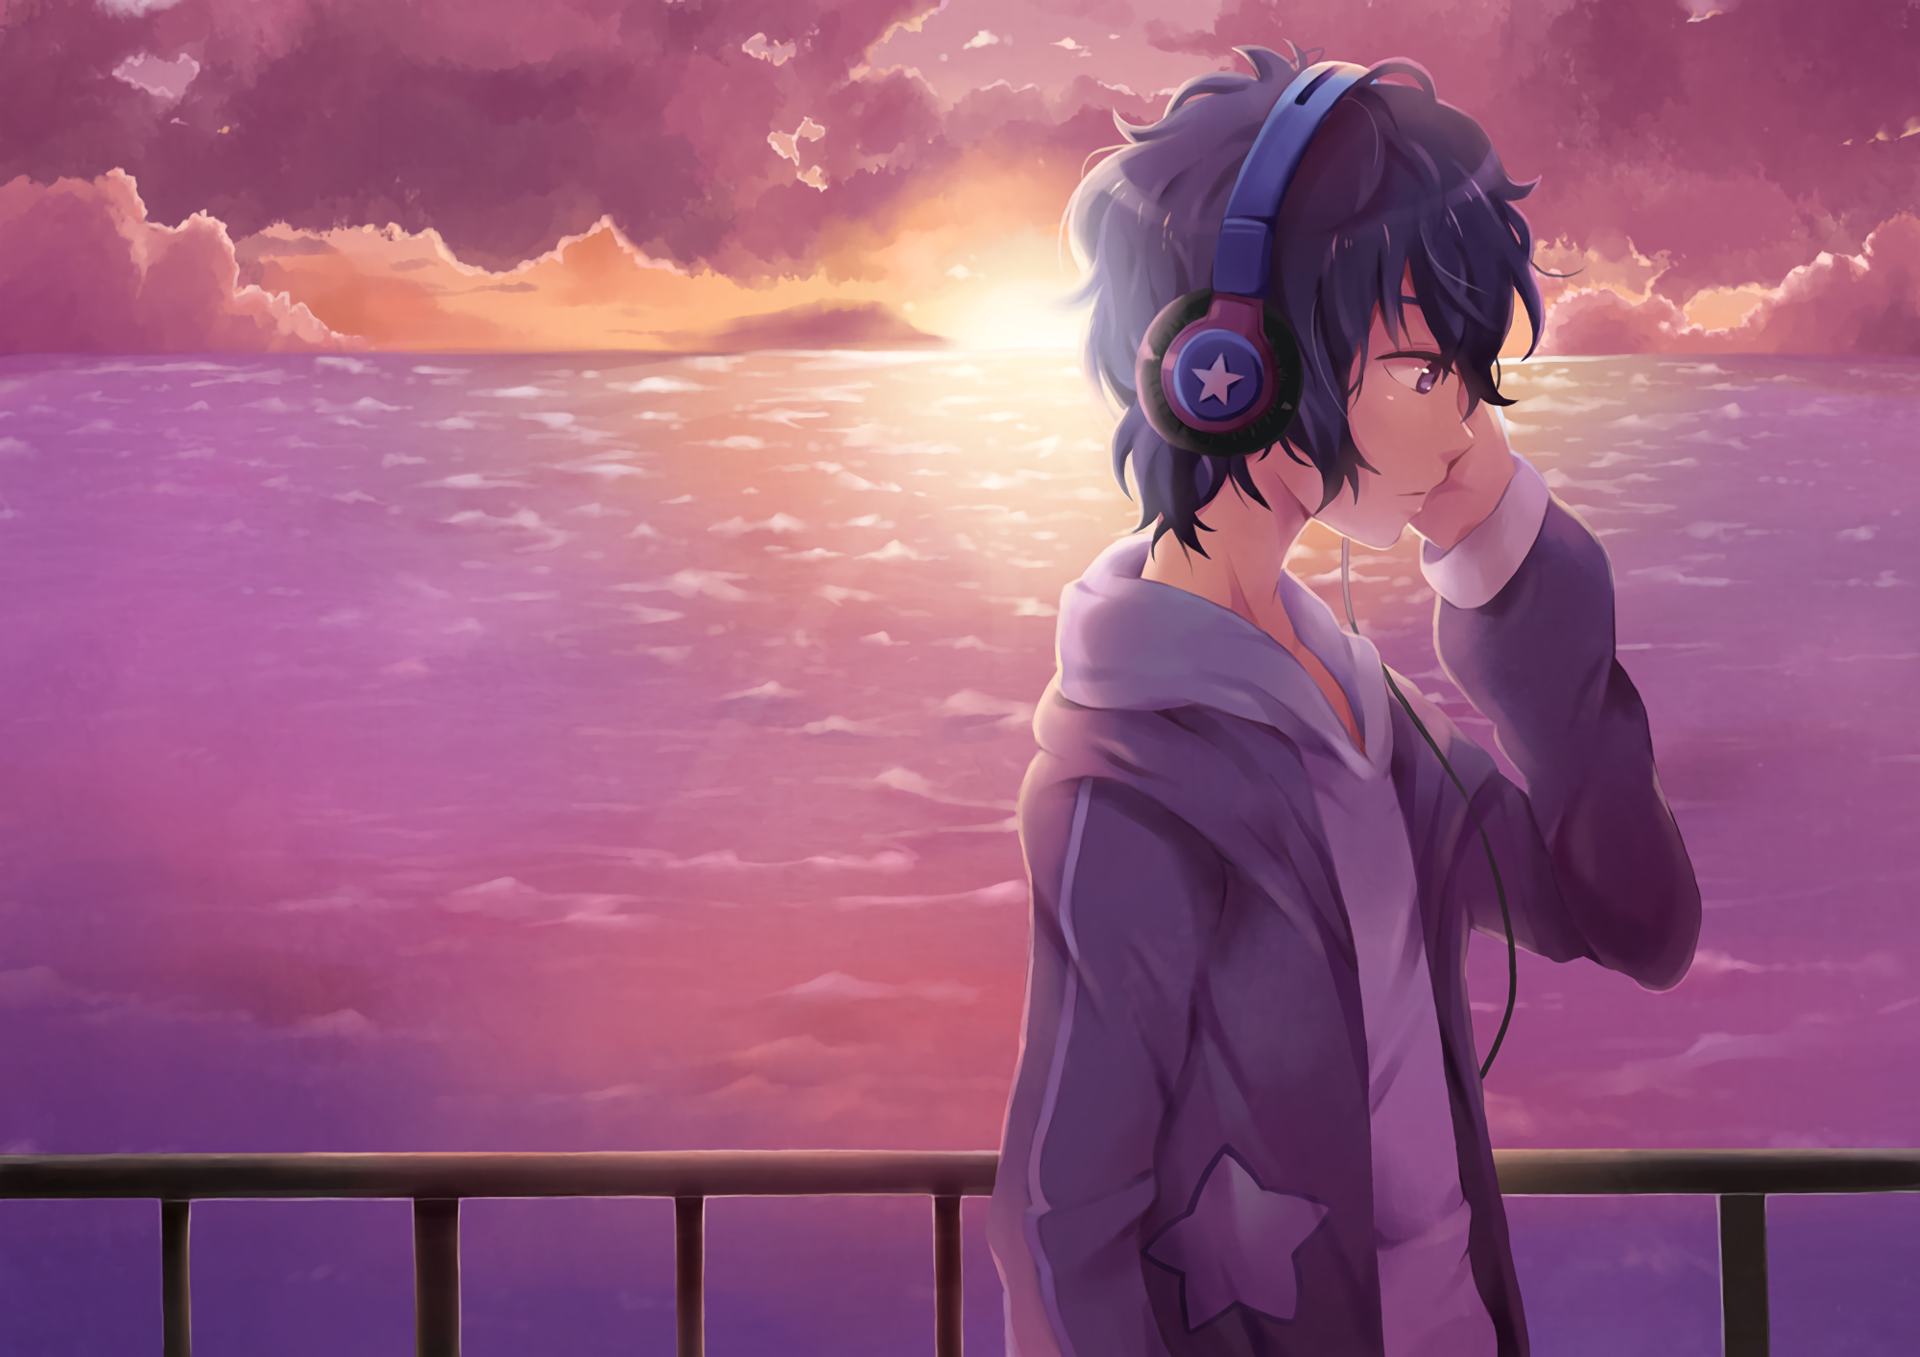 Anime Original Headphones Boy Original (Anime) Wallpaper